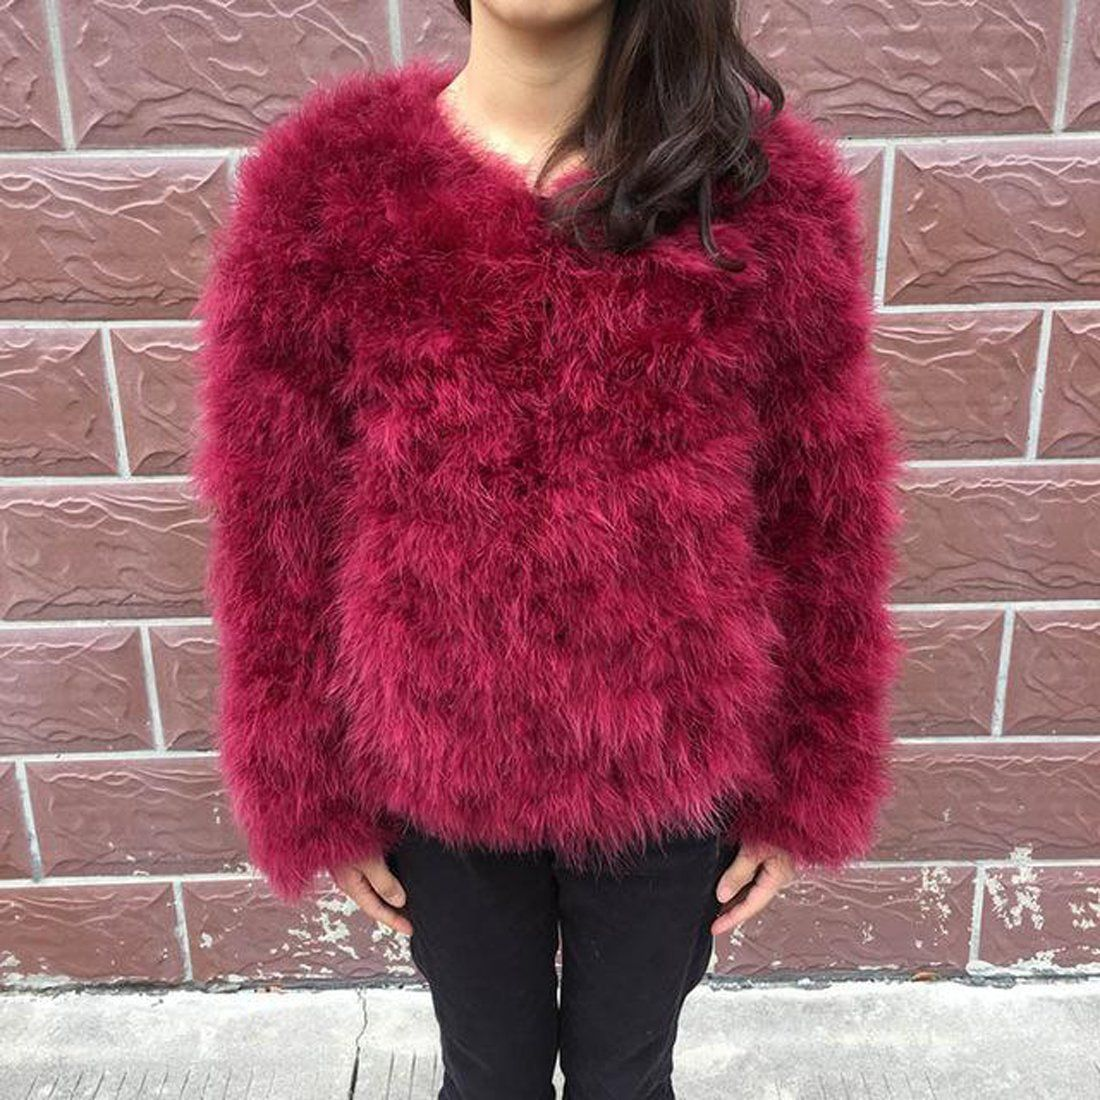 Women S Coat Real Fur Ostrich Feather For Winter Real Fur Coat Max Fashion Winter Coats Women